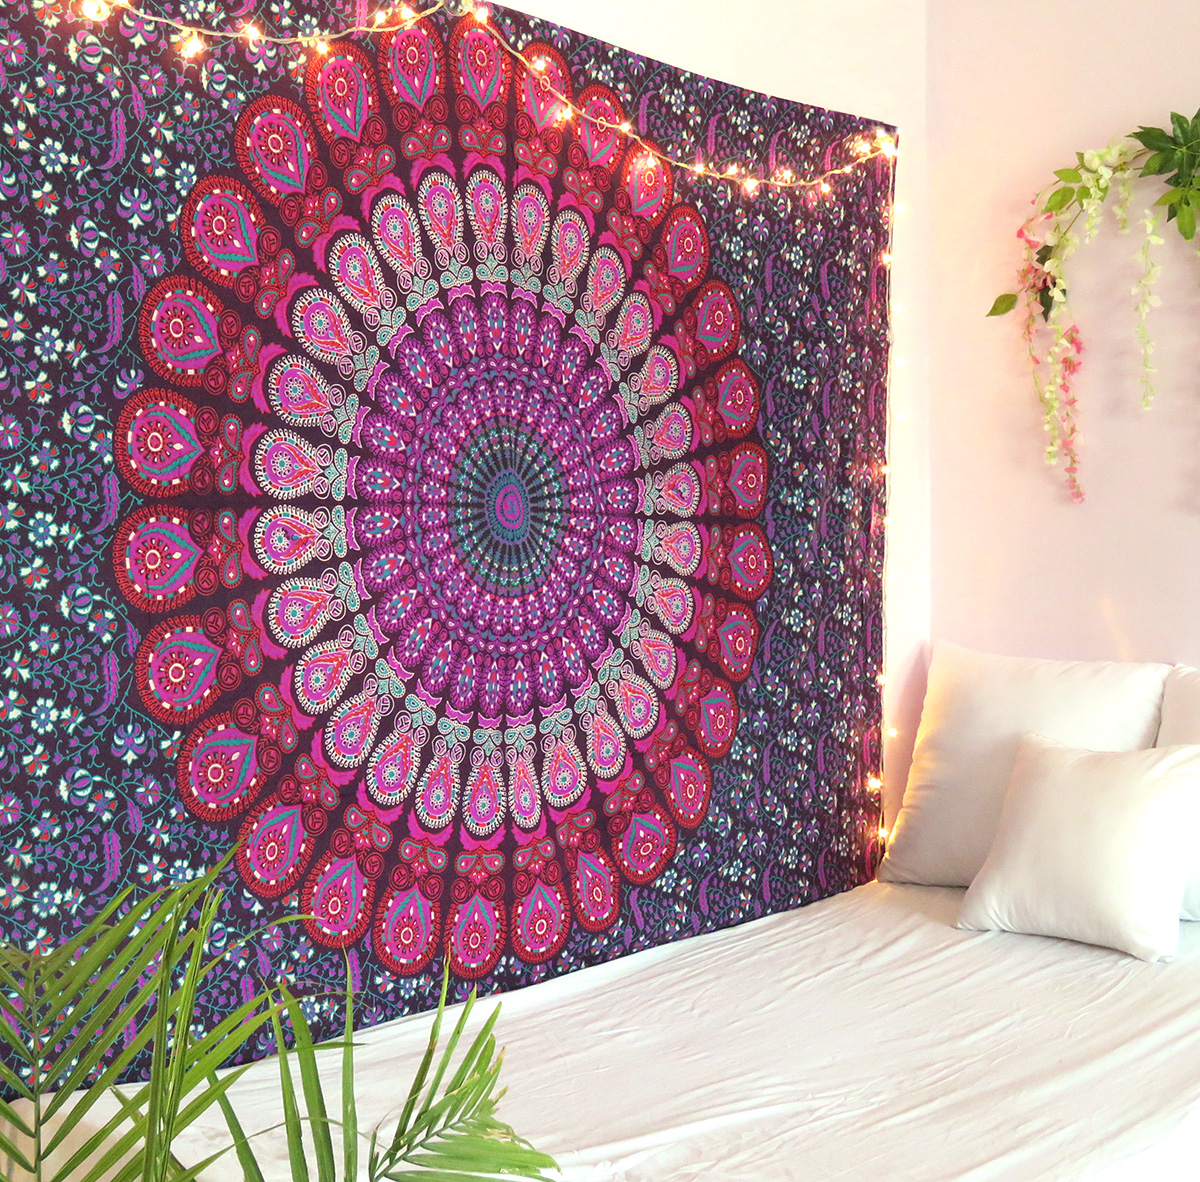 Purple and Pink Peacock Mandala Tapestry Twin Size Boho Beach Throw Dorm Room Indian Wall Hanging Art Bedspread Outdoor Picnic Blanket by Oussum